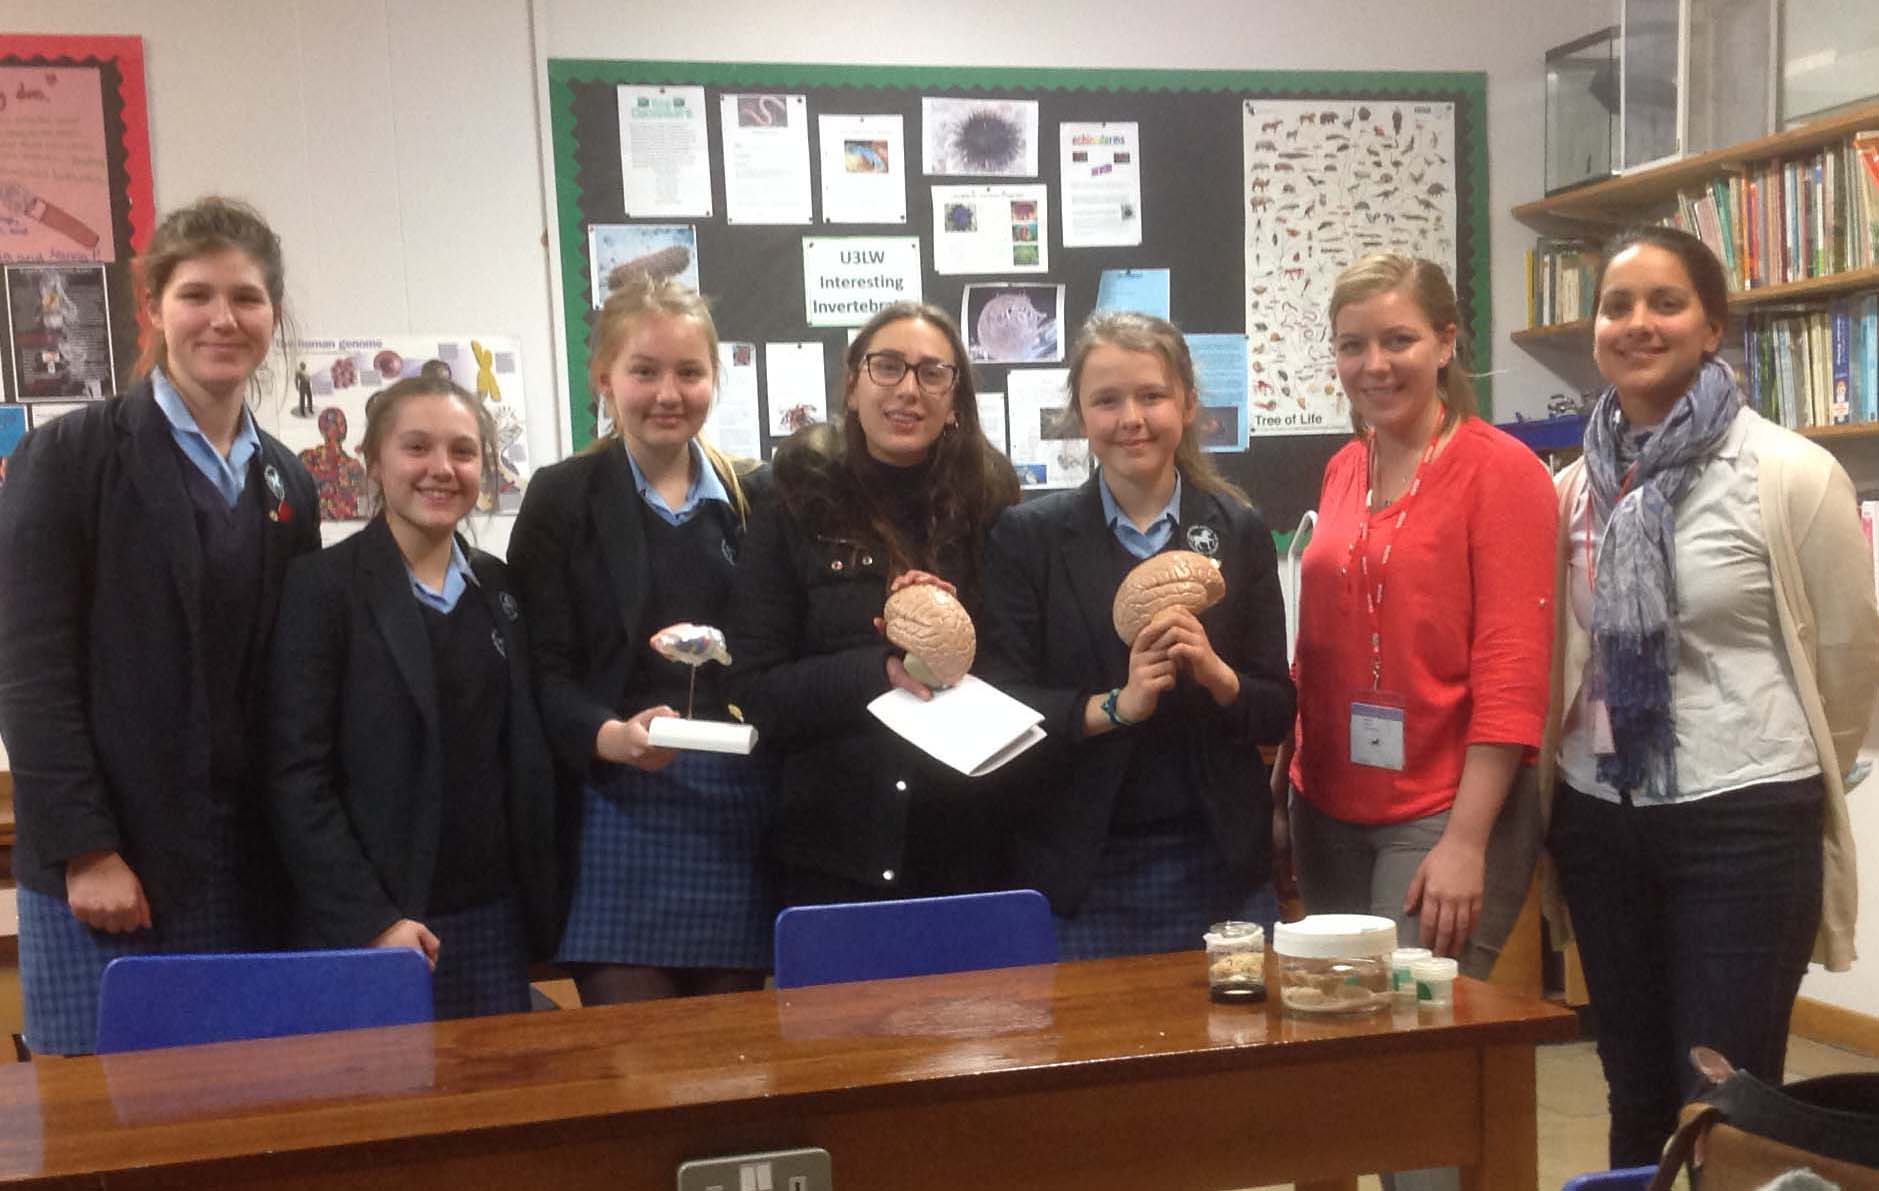 Natalie Doig and Emilie Syed with pupils at the Headington School Biology Club.